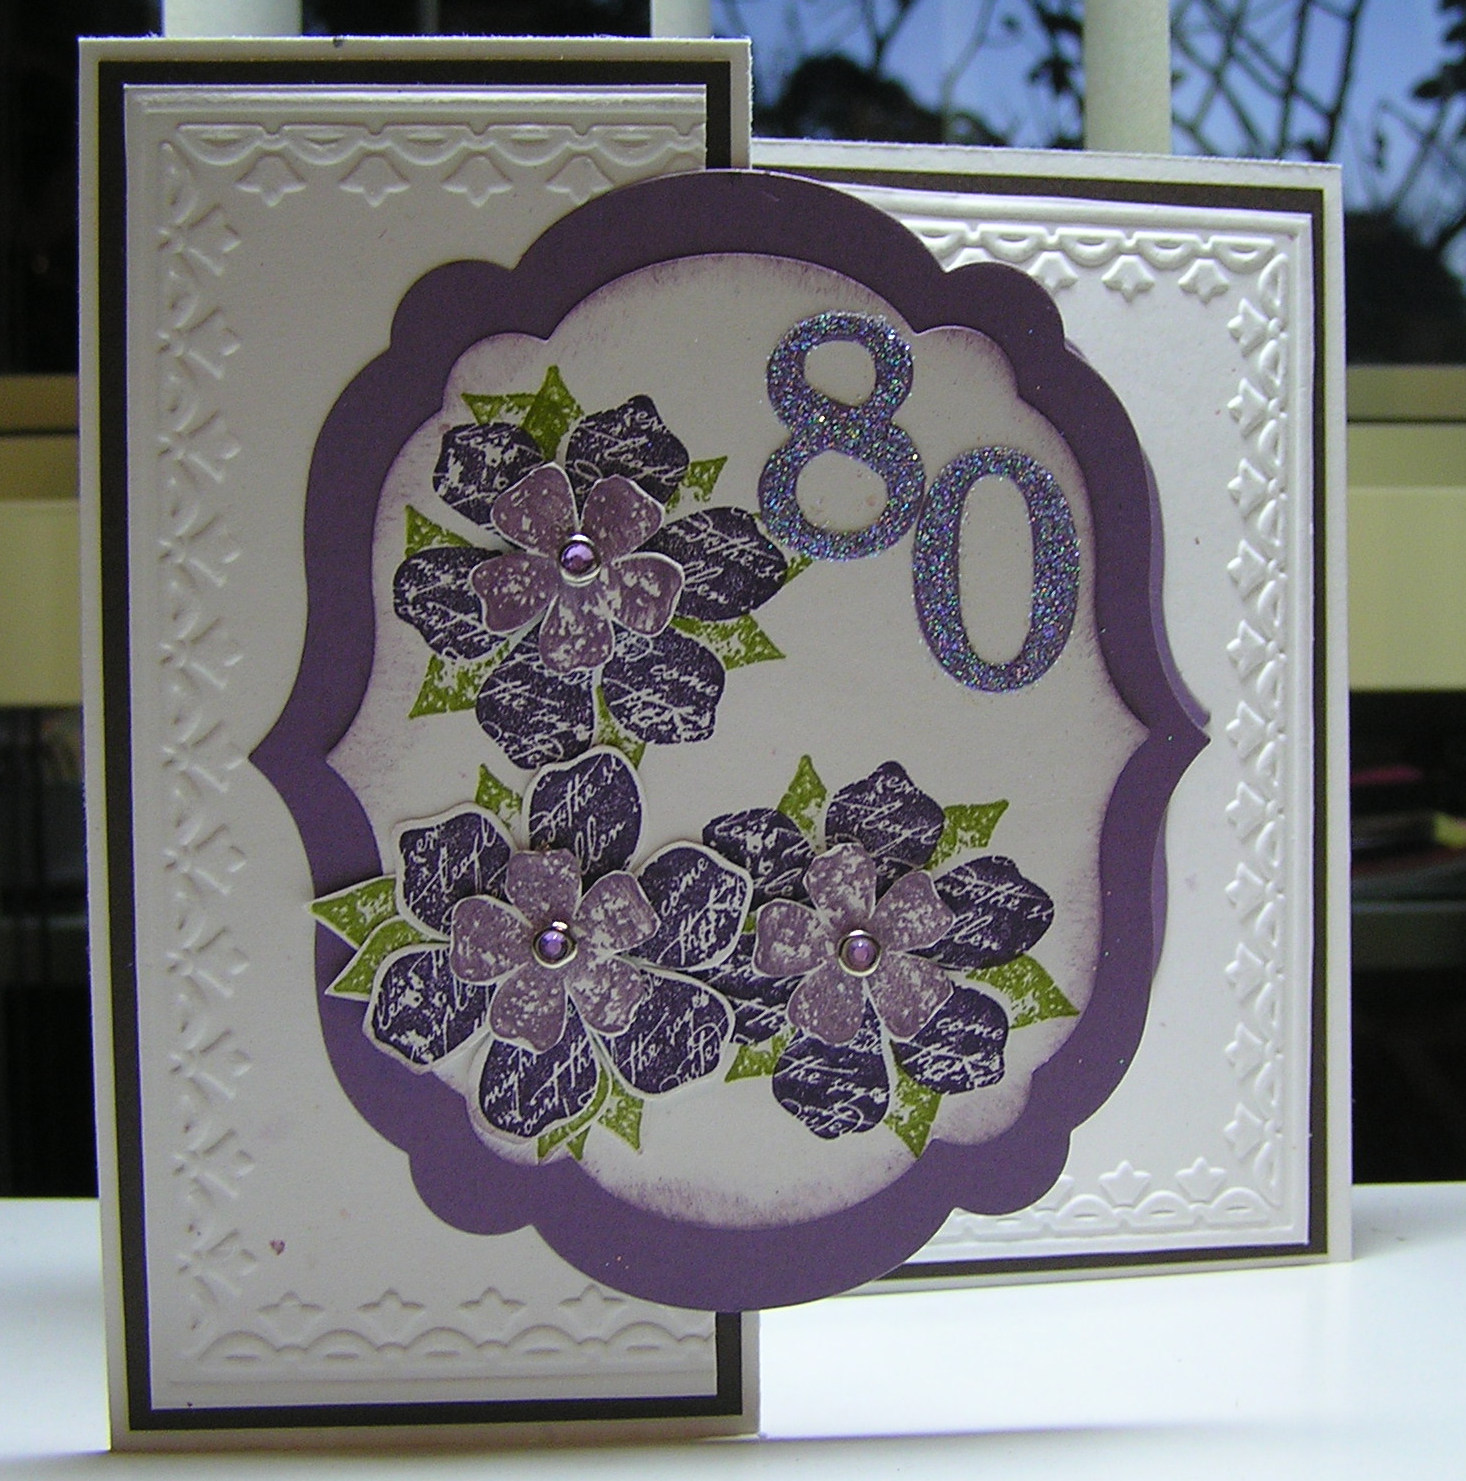 Stamping Passion Mums 80th Birthday Card – 80th Birthday Cards for Mum